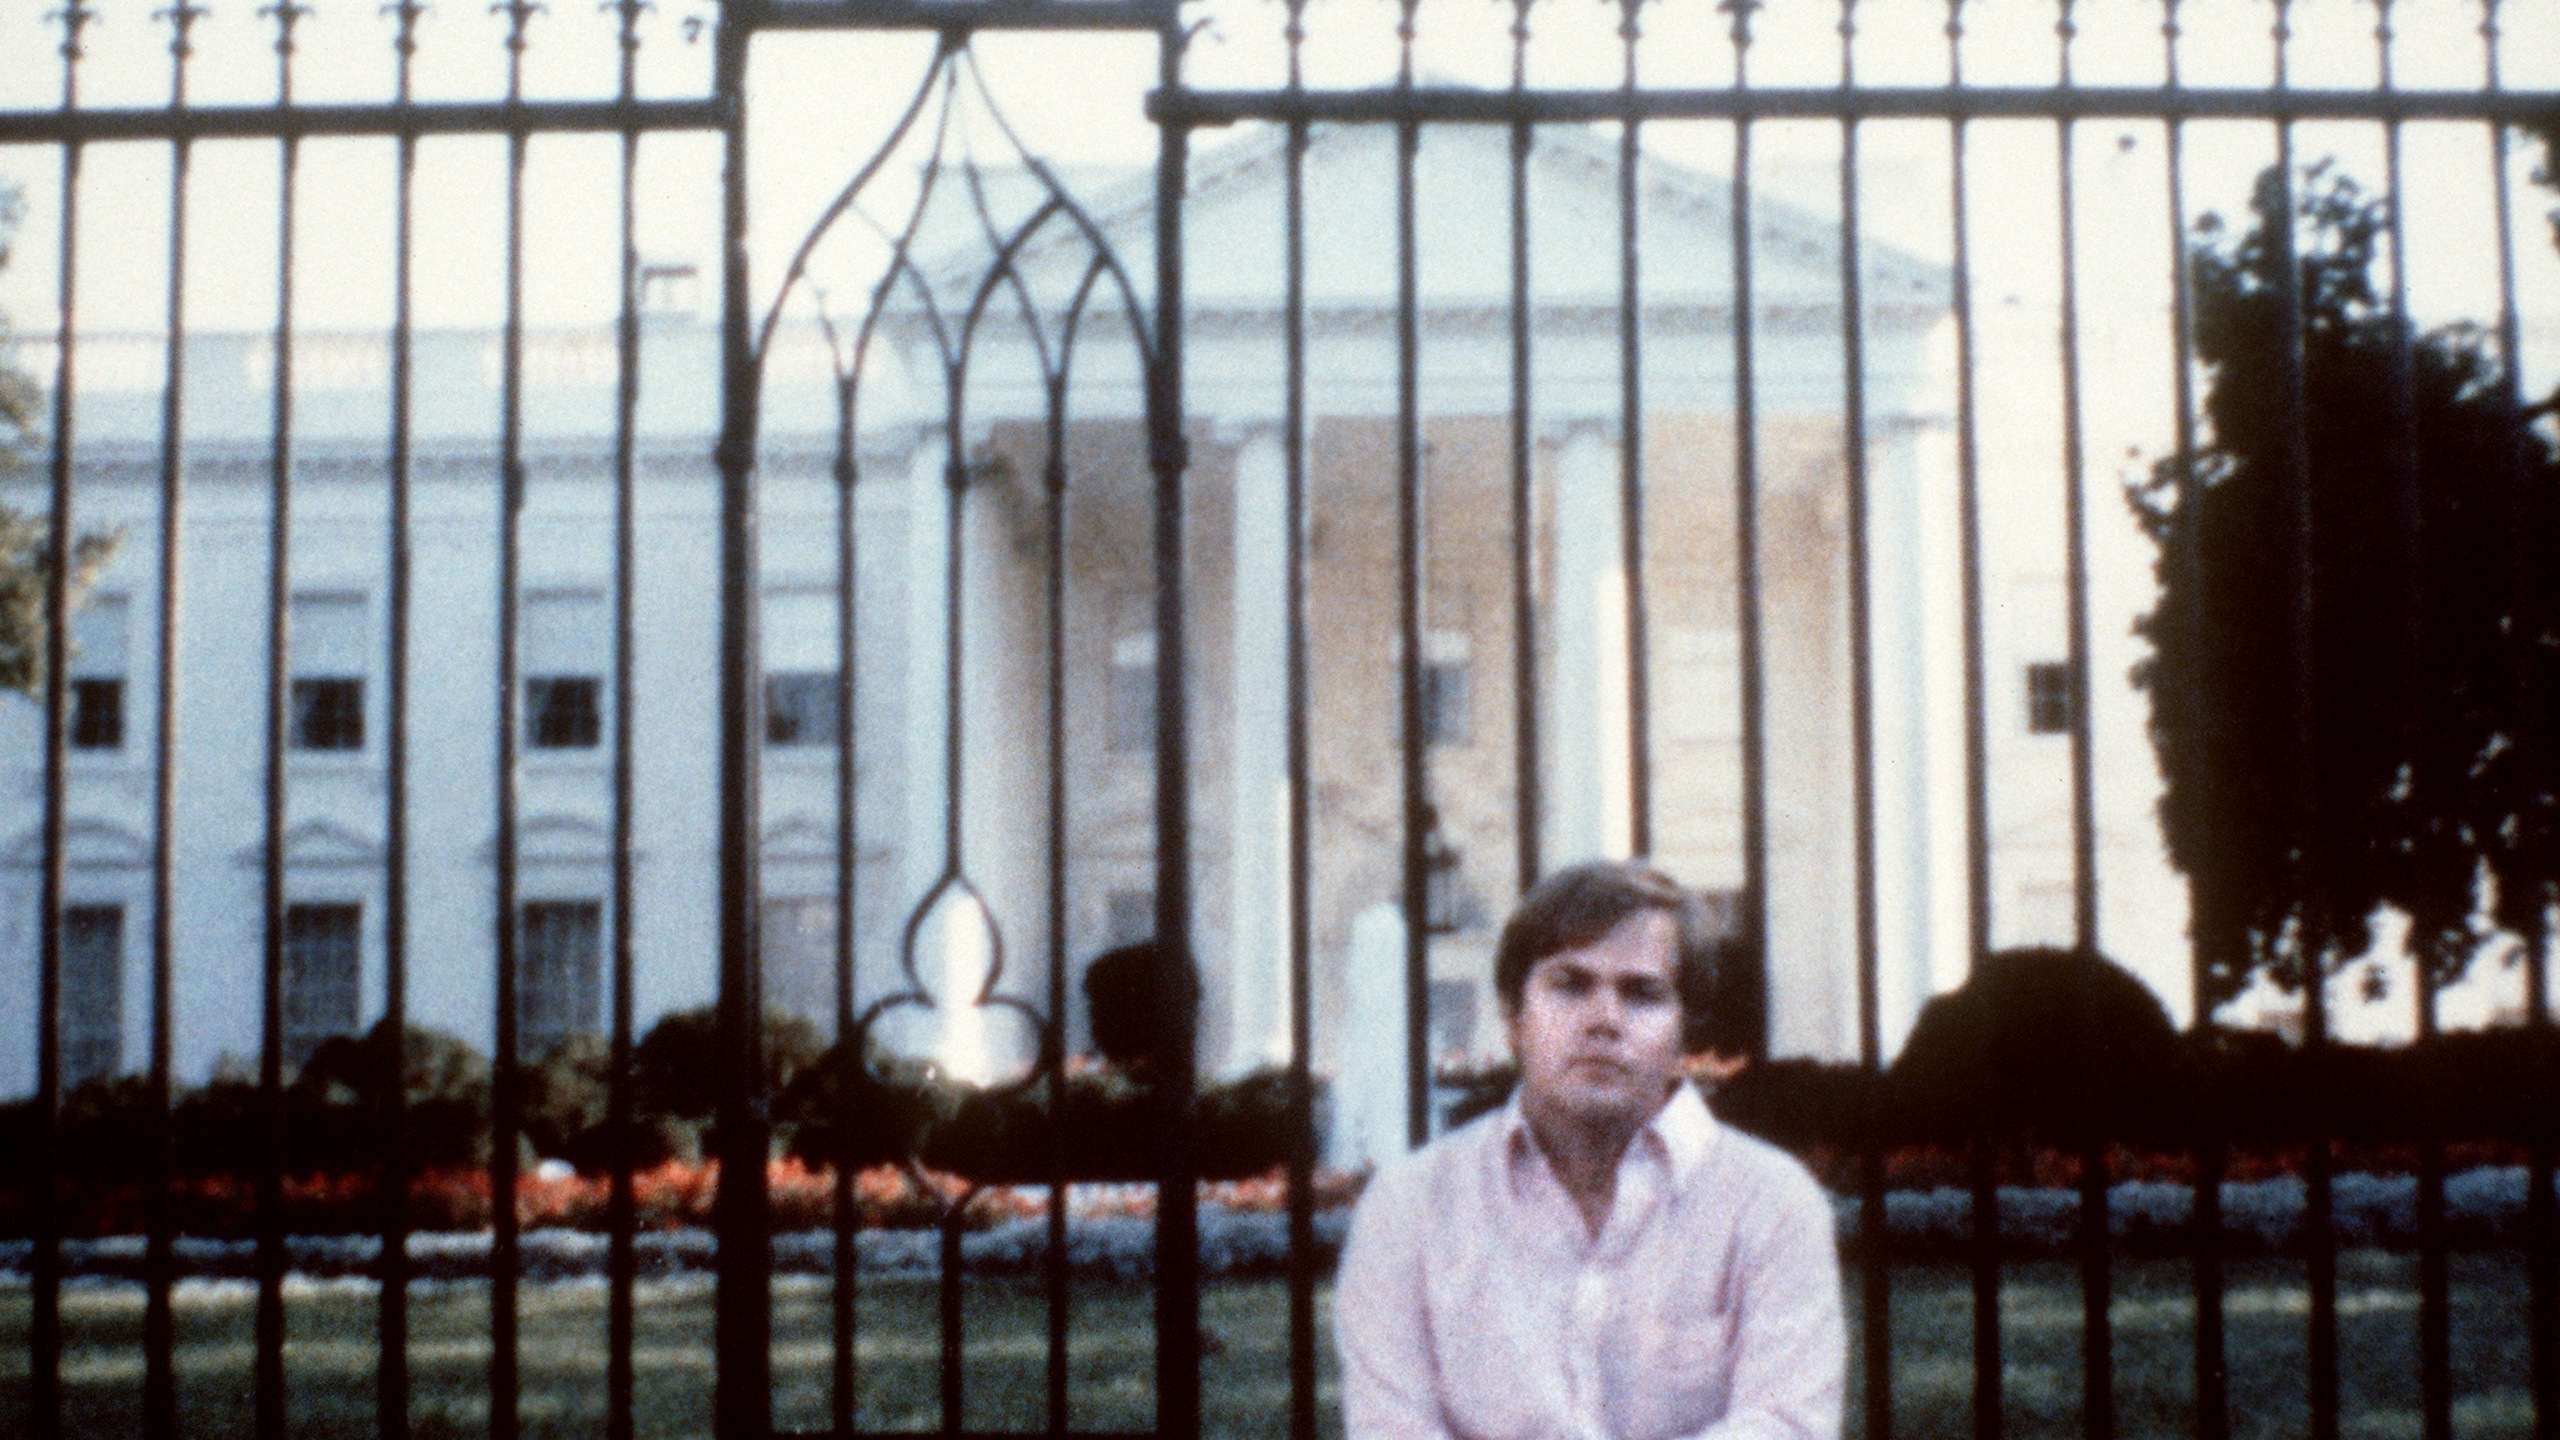 John Hinckley Jr. poses in front of the White House in 1980. (Credit: AFP / Getty Images)